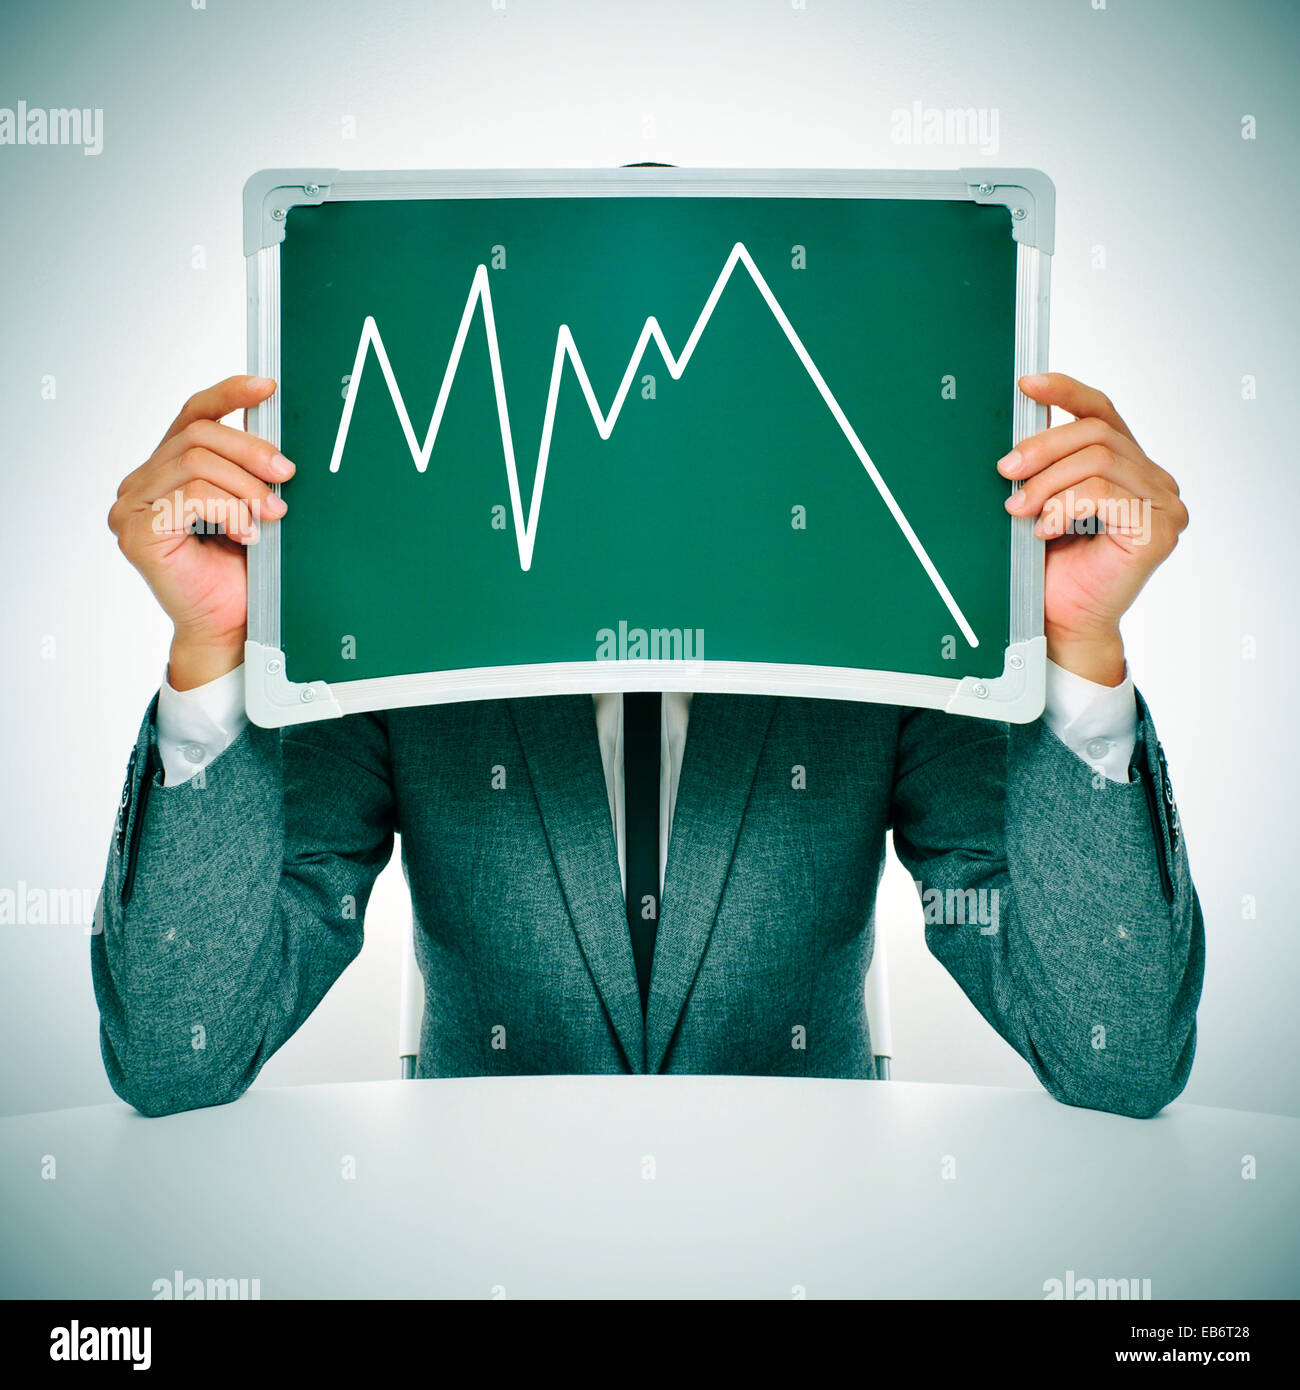 man wearing a suit sitting in a table showing a graph of economic losses - Stock Image